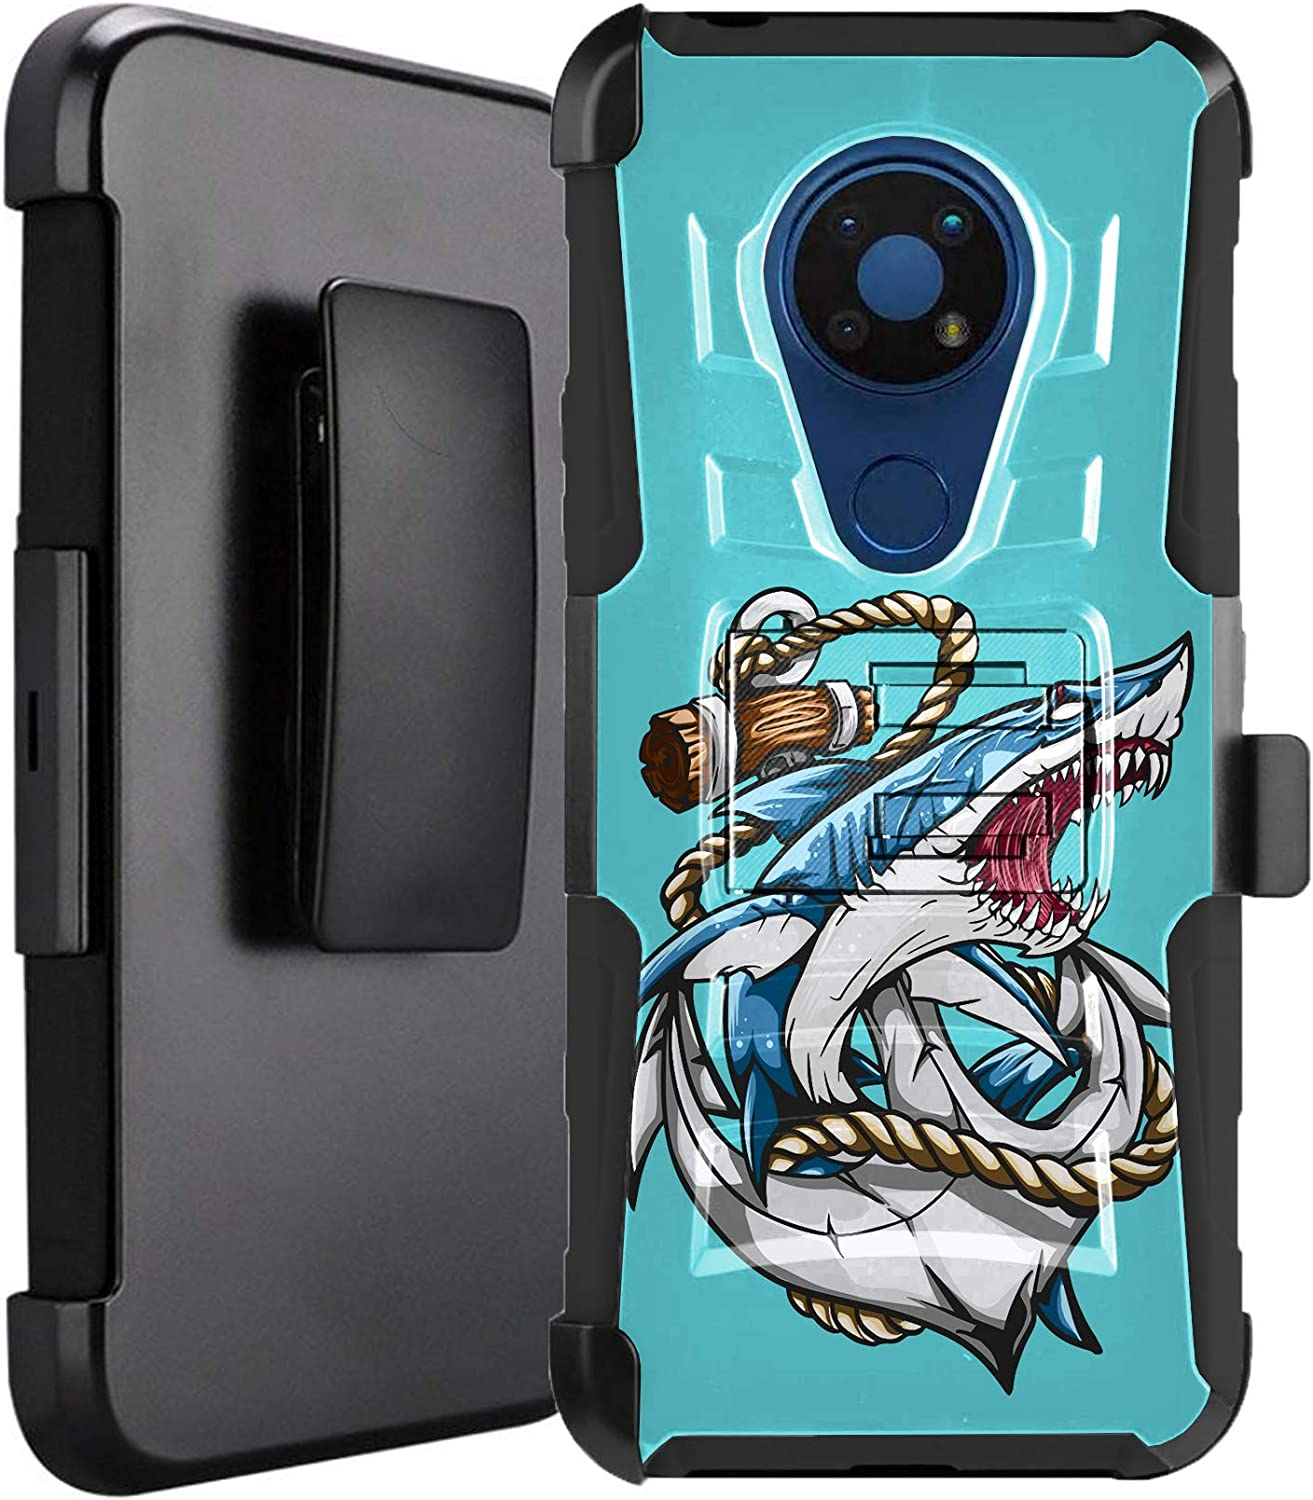 DALUX Hybrid Kickstand Holster Phone Case Compatible with Nokia C5 Endi - Anchor Shark